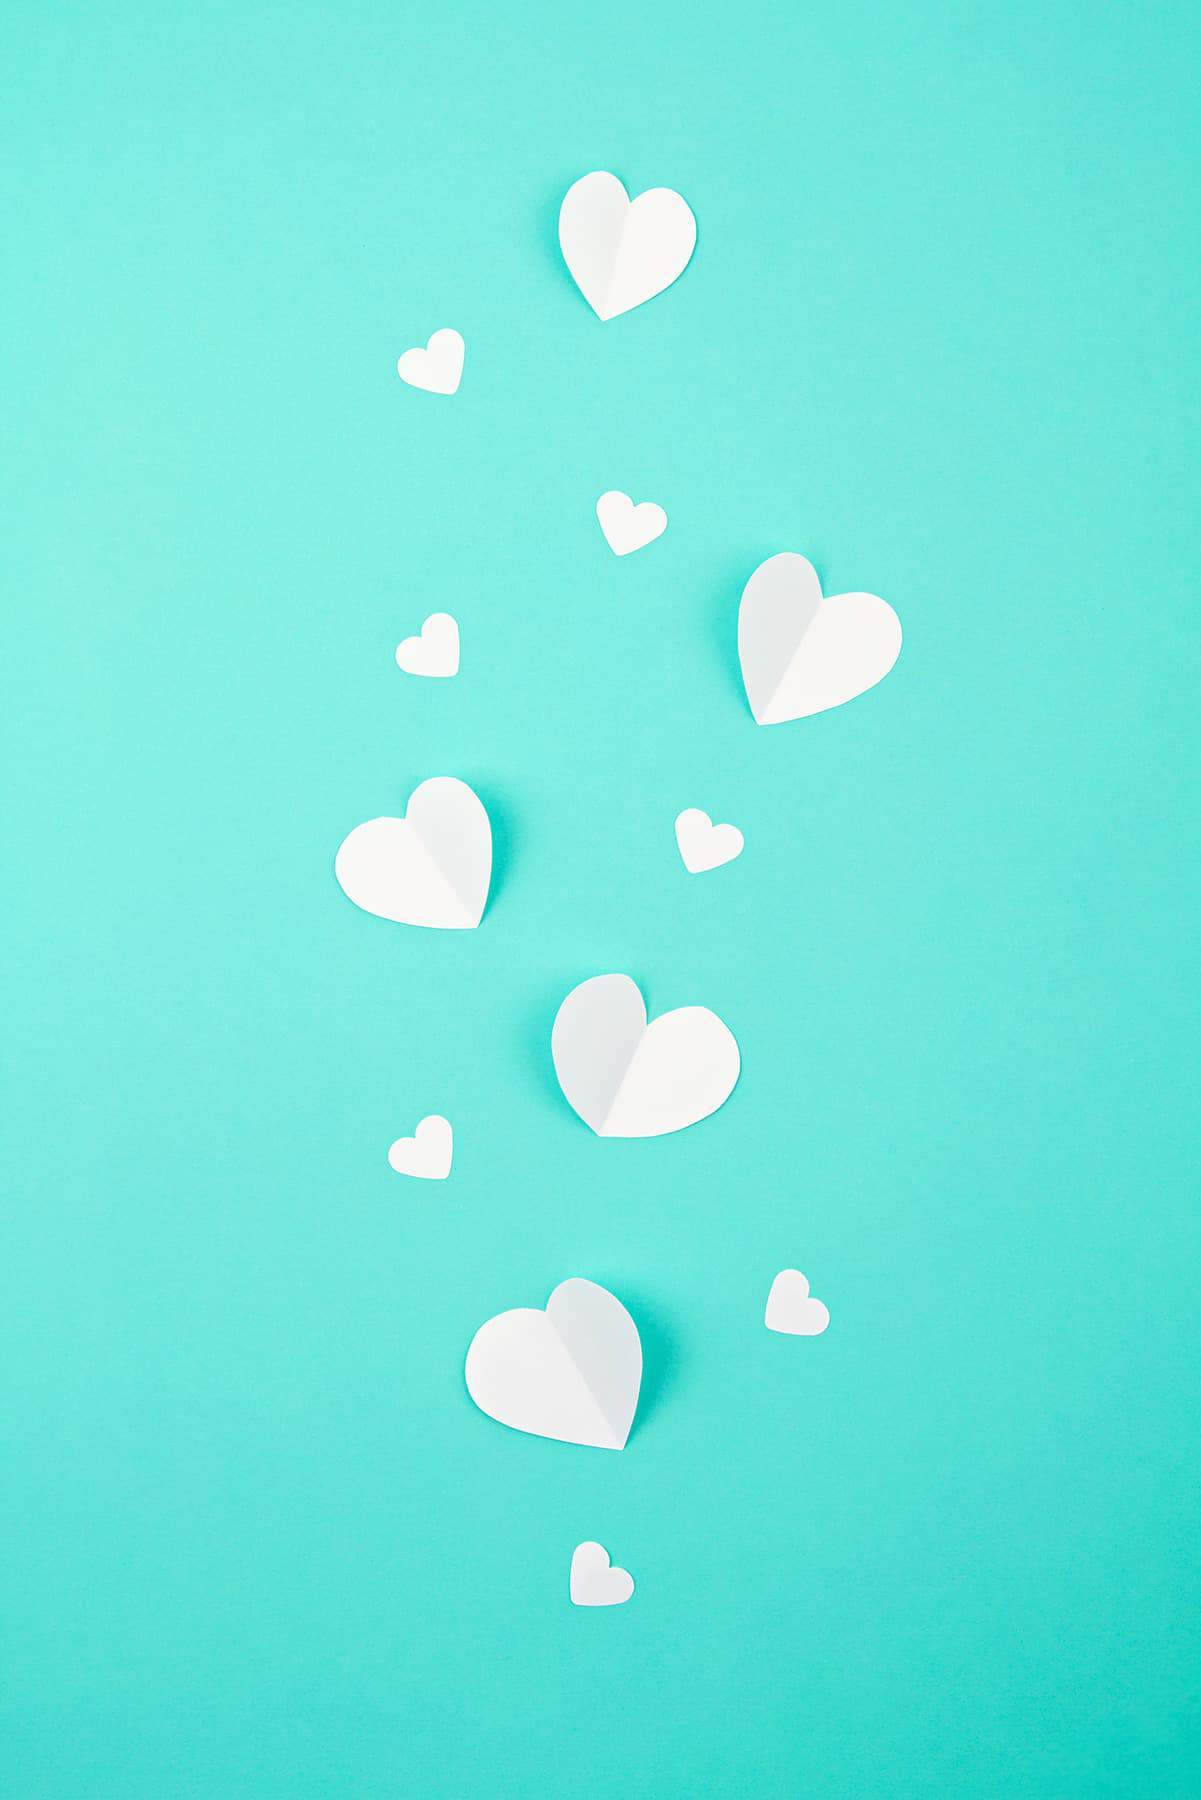 Paper hearts on a teal background